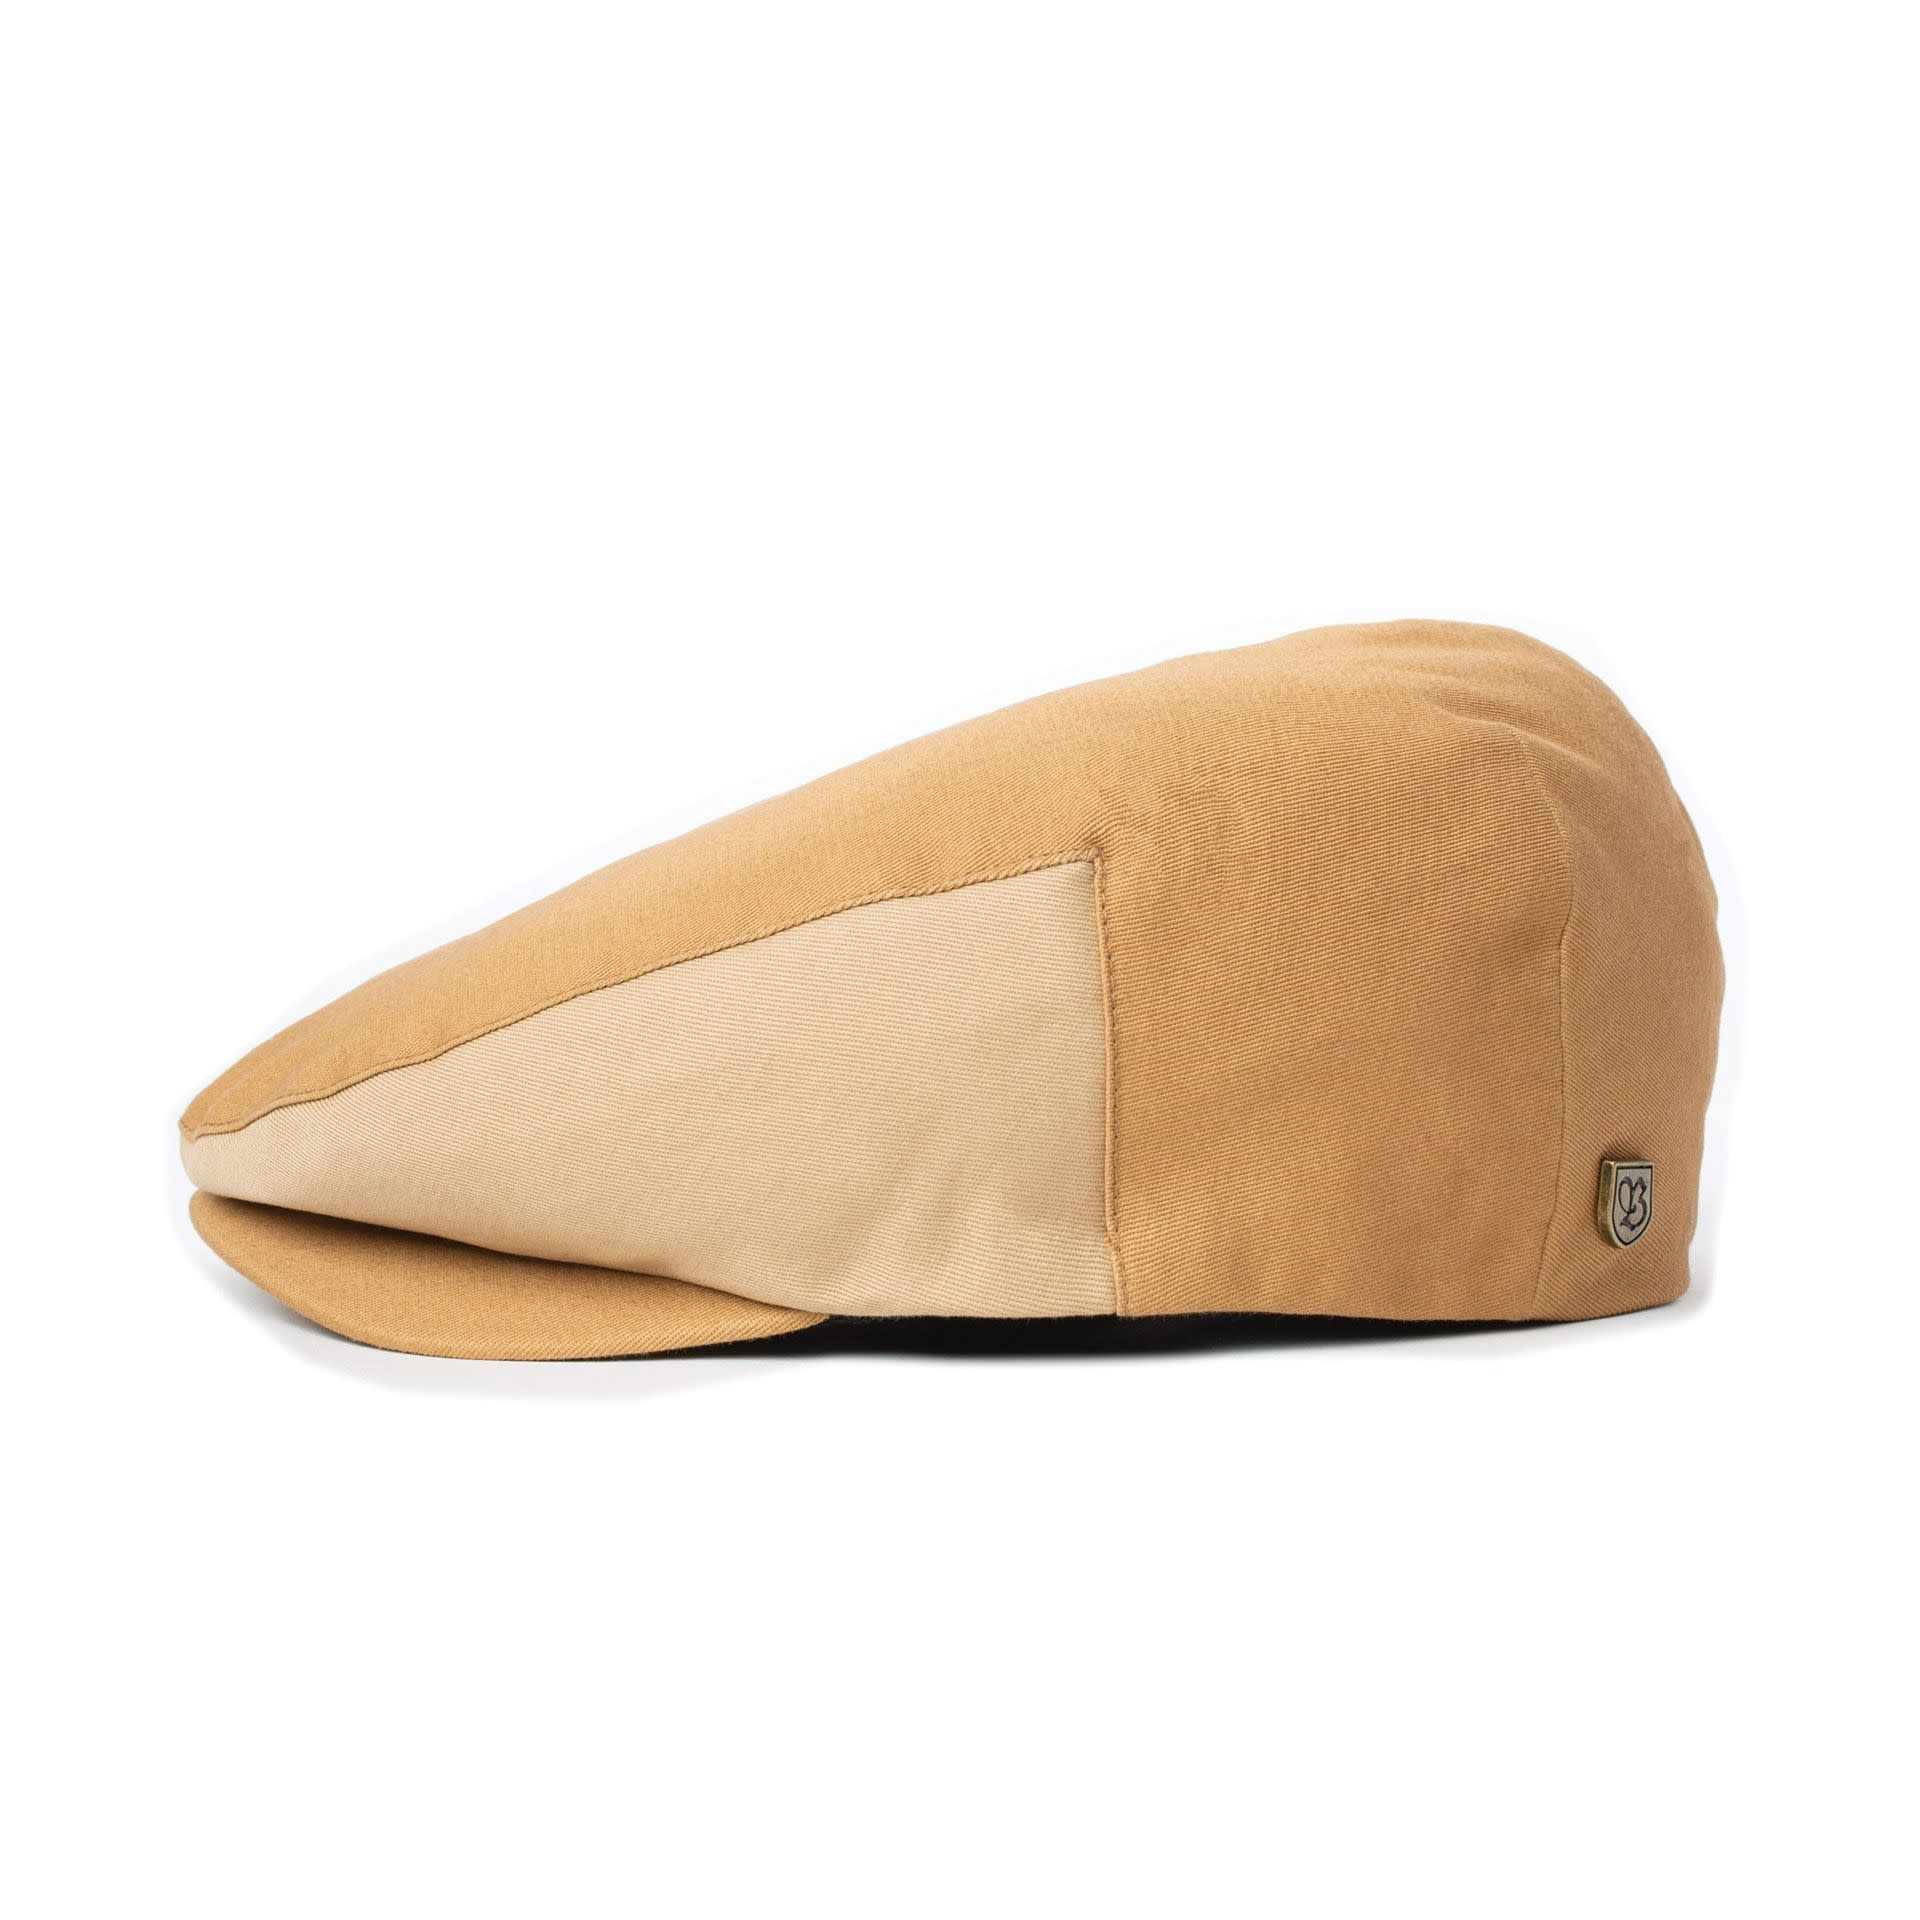 Brixton Brixton Hooligan Snap Cap - Coconut/Safari